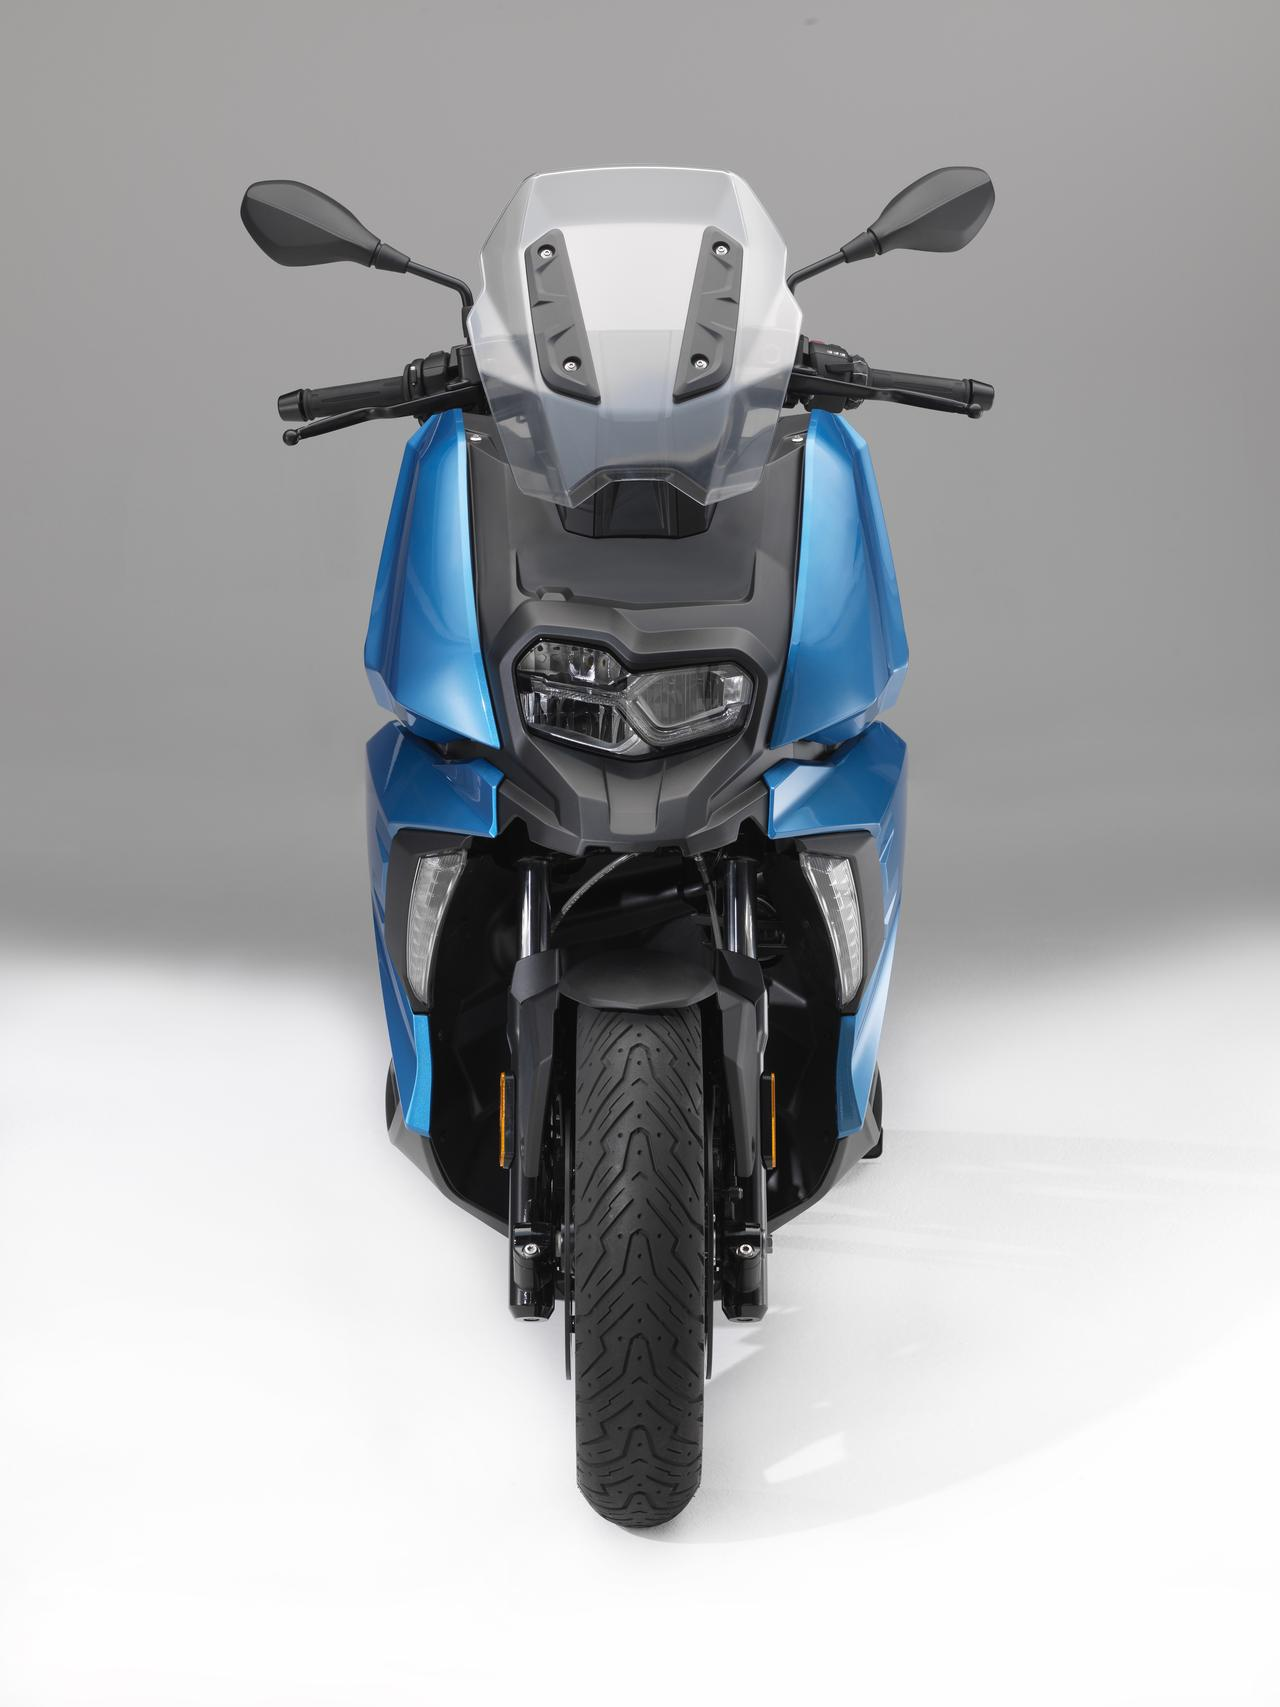 Images : 10番目の画像 - BMW C 400 X - LAWRENCE - Motorcycle x Cars + α = Your Life.